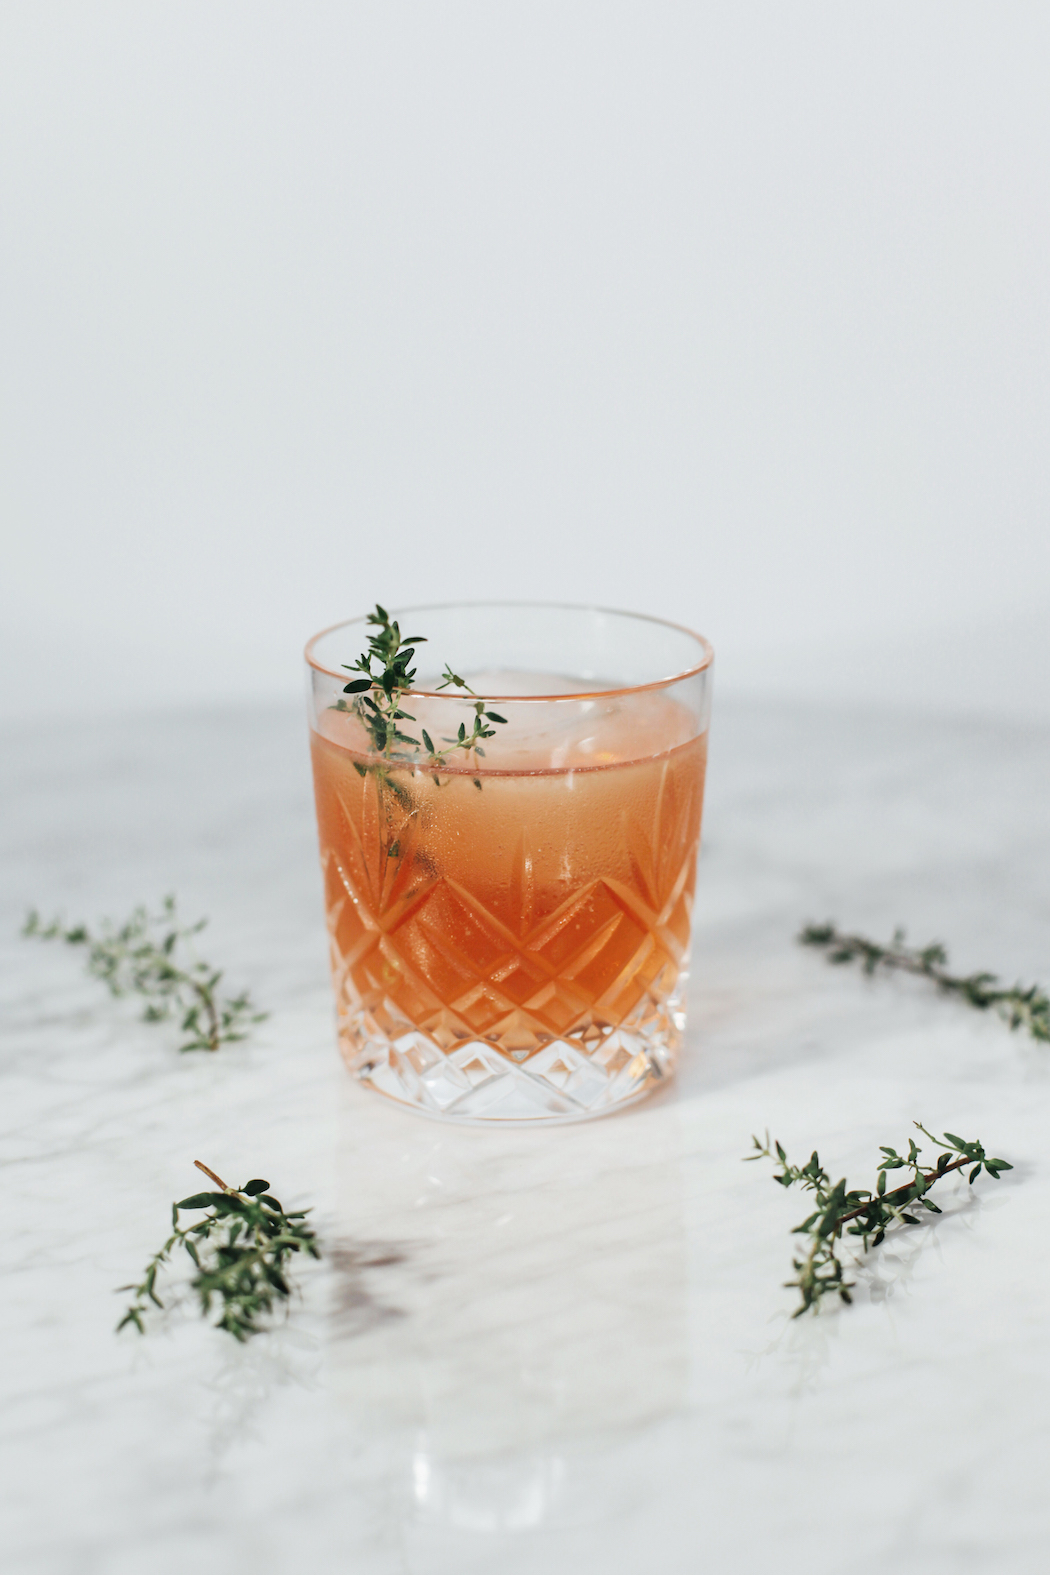 cocktail-thym-grenade-moodfeather-2